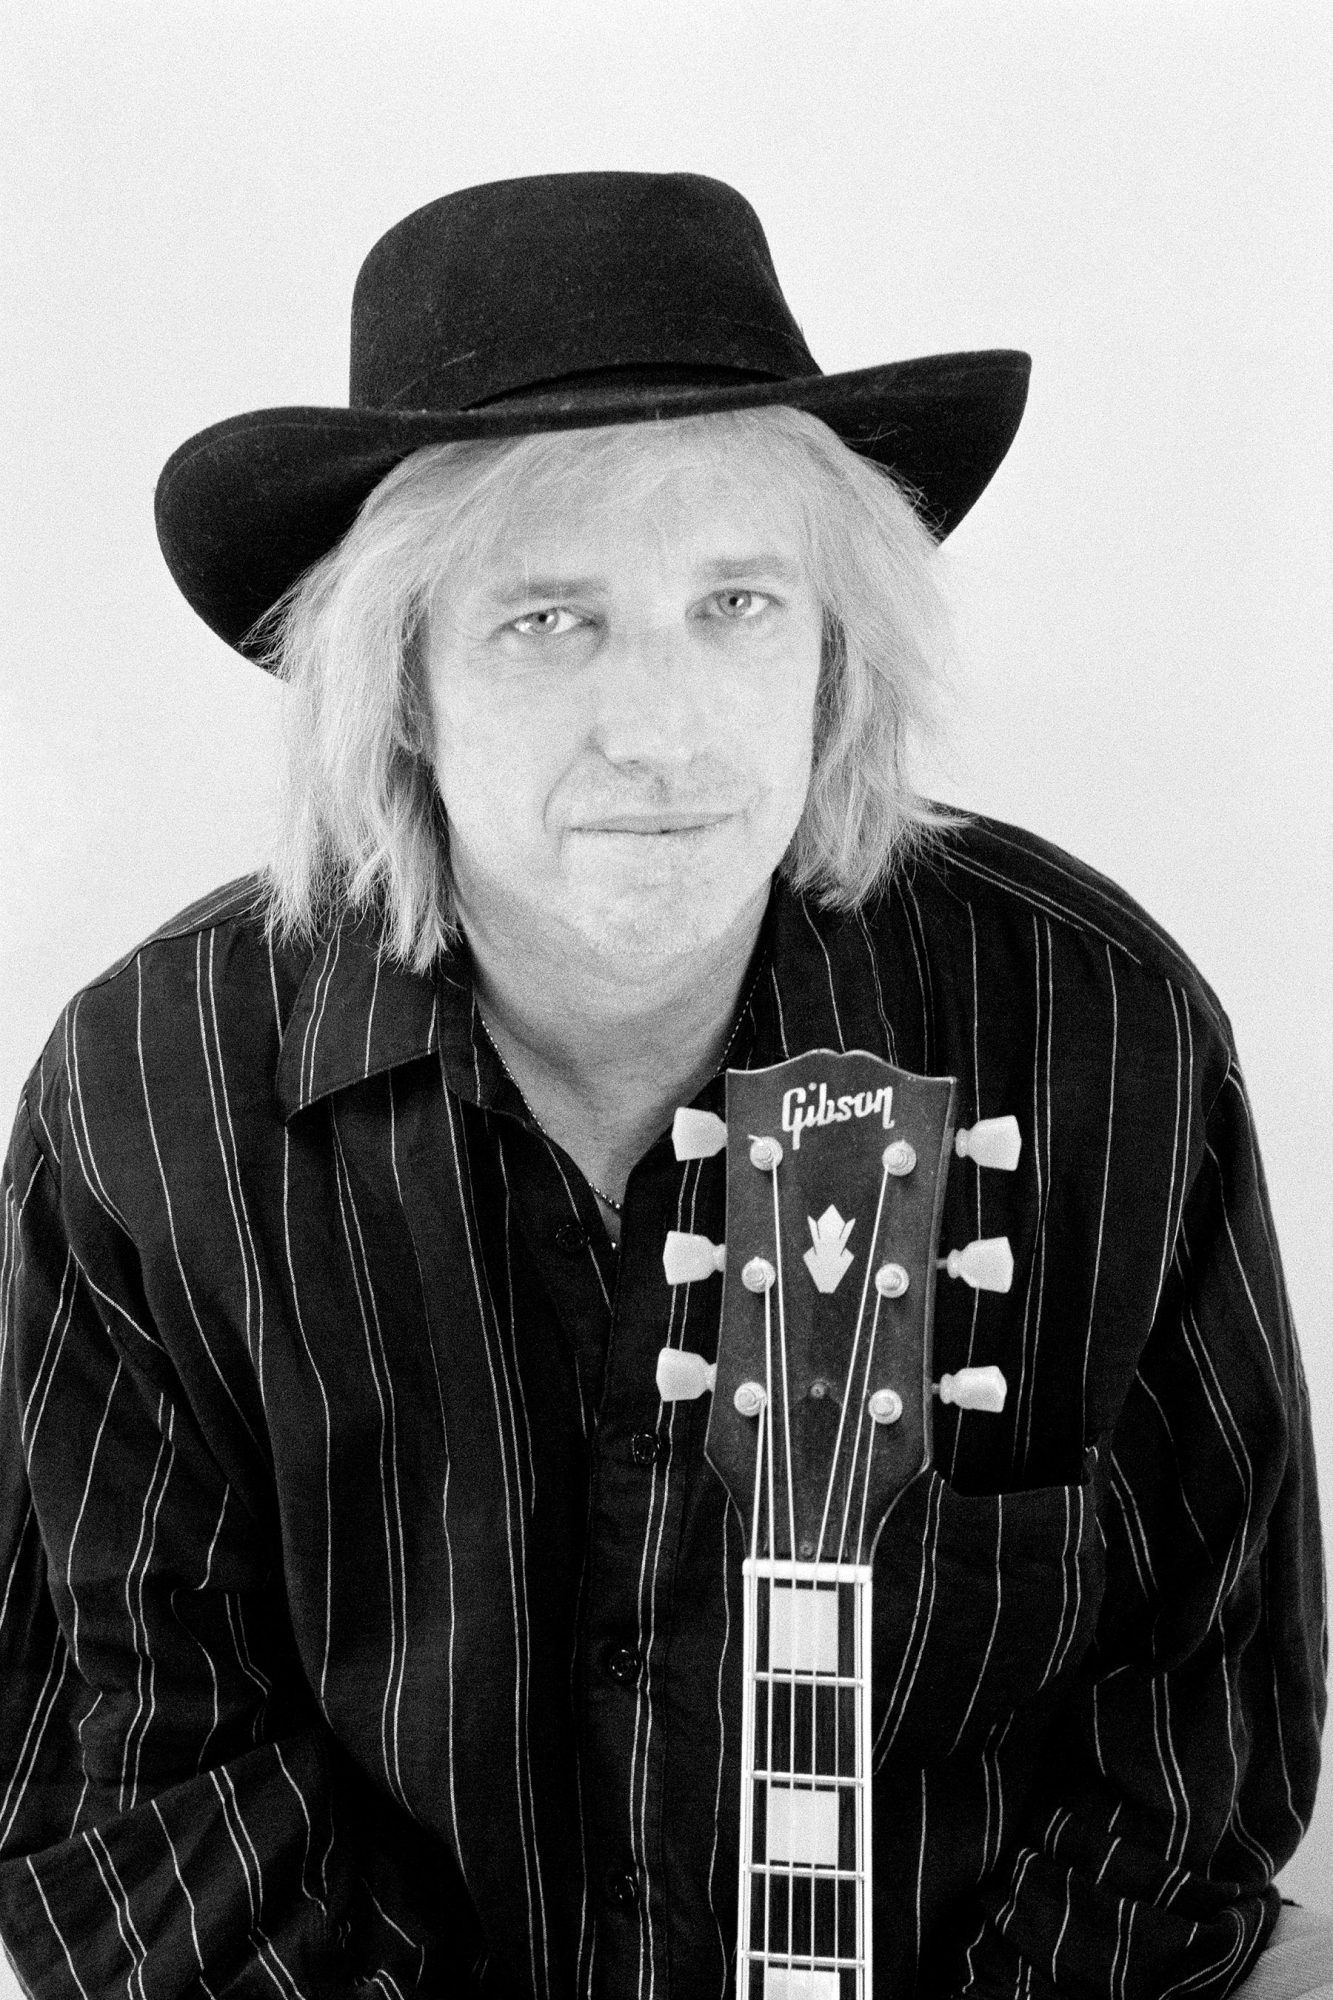 Tom Petty of Tom Petty and the Heartbreakers